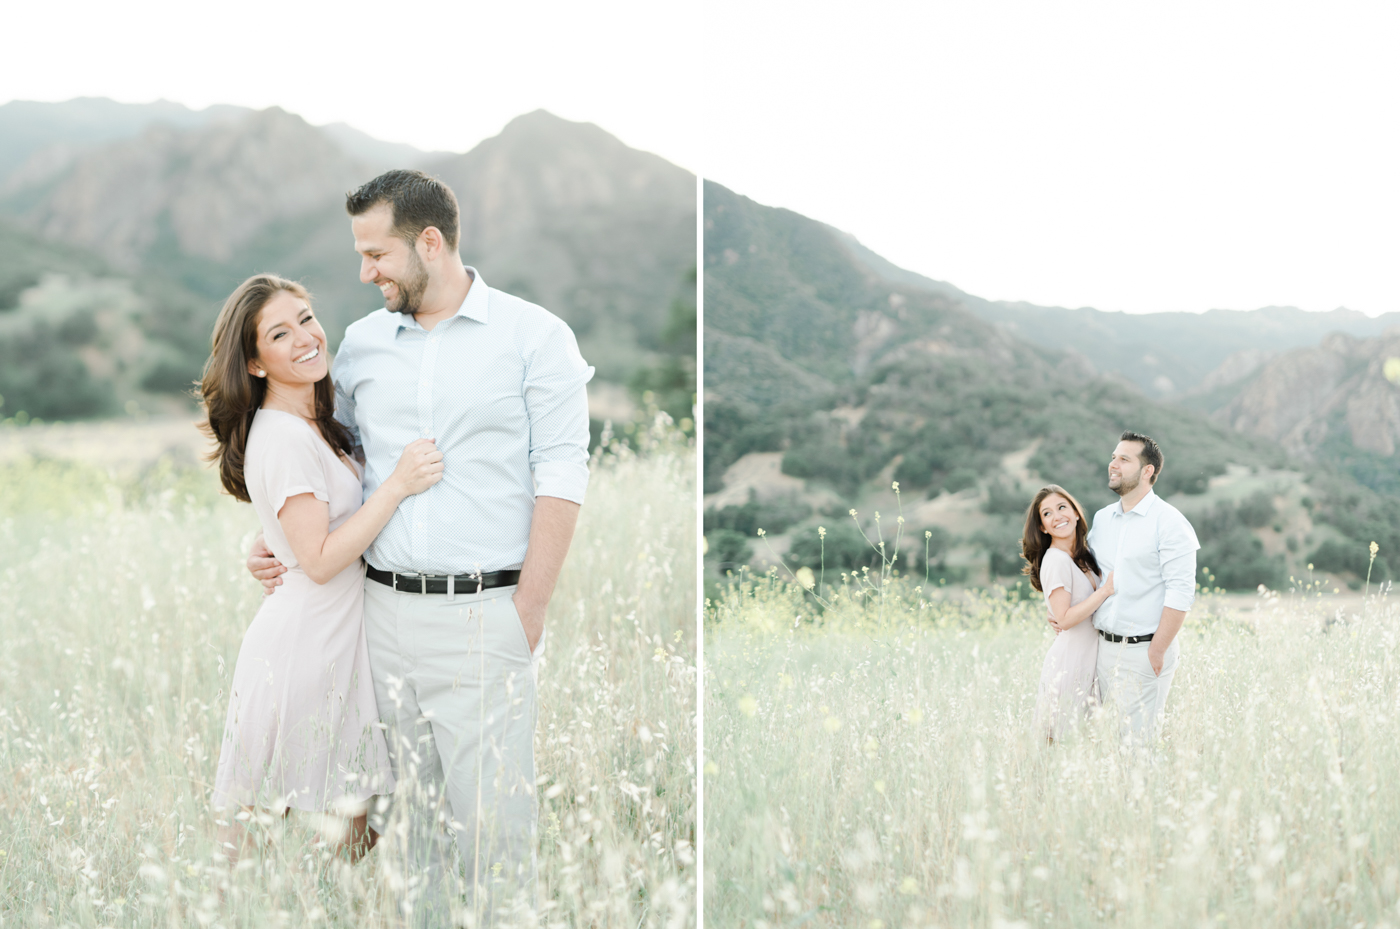 a&a_malibu_creek_state_park_engagement_session_los_angeles_fine_art_wedding_photographer-18.jpg